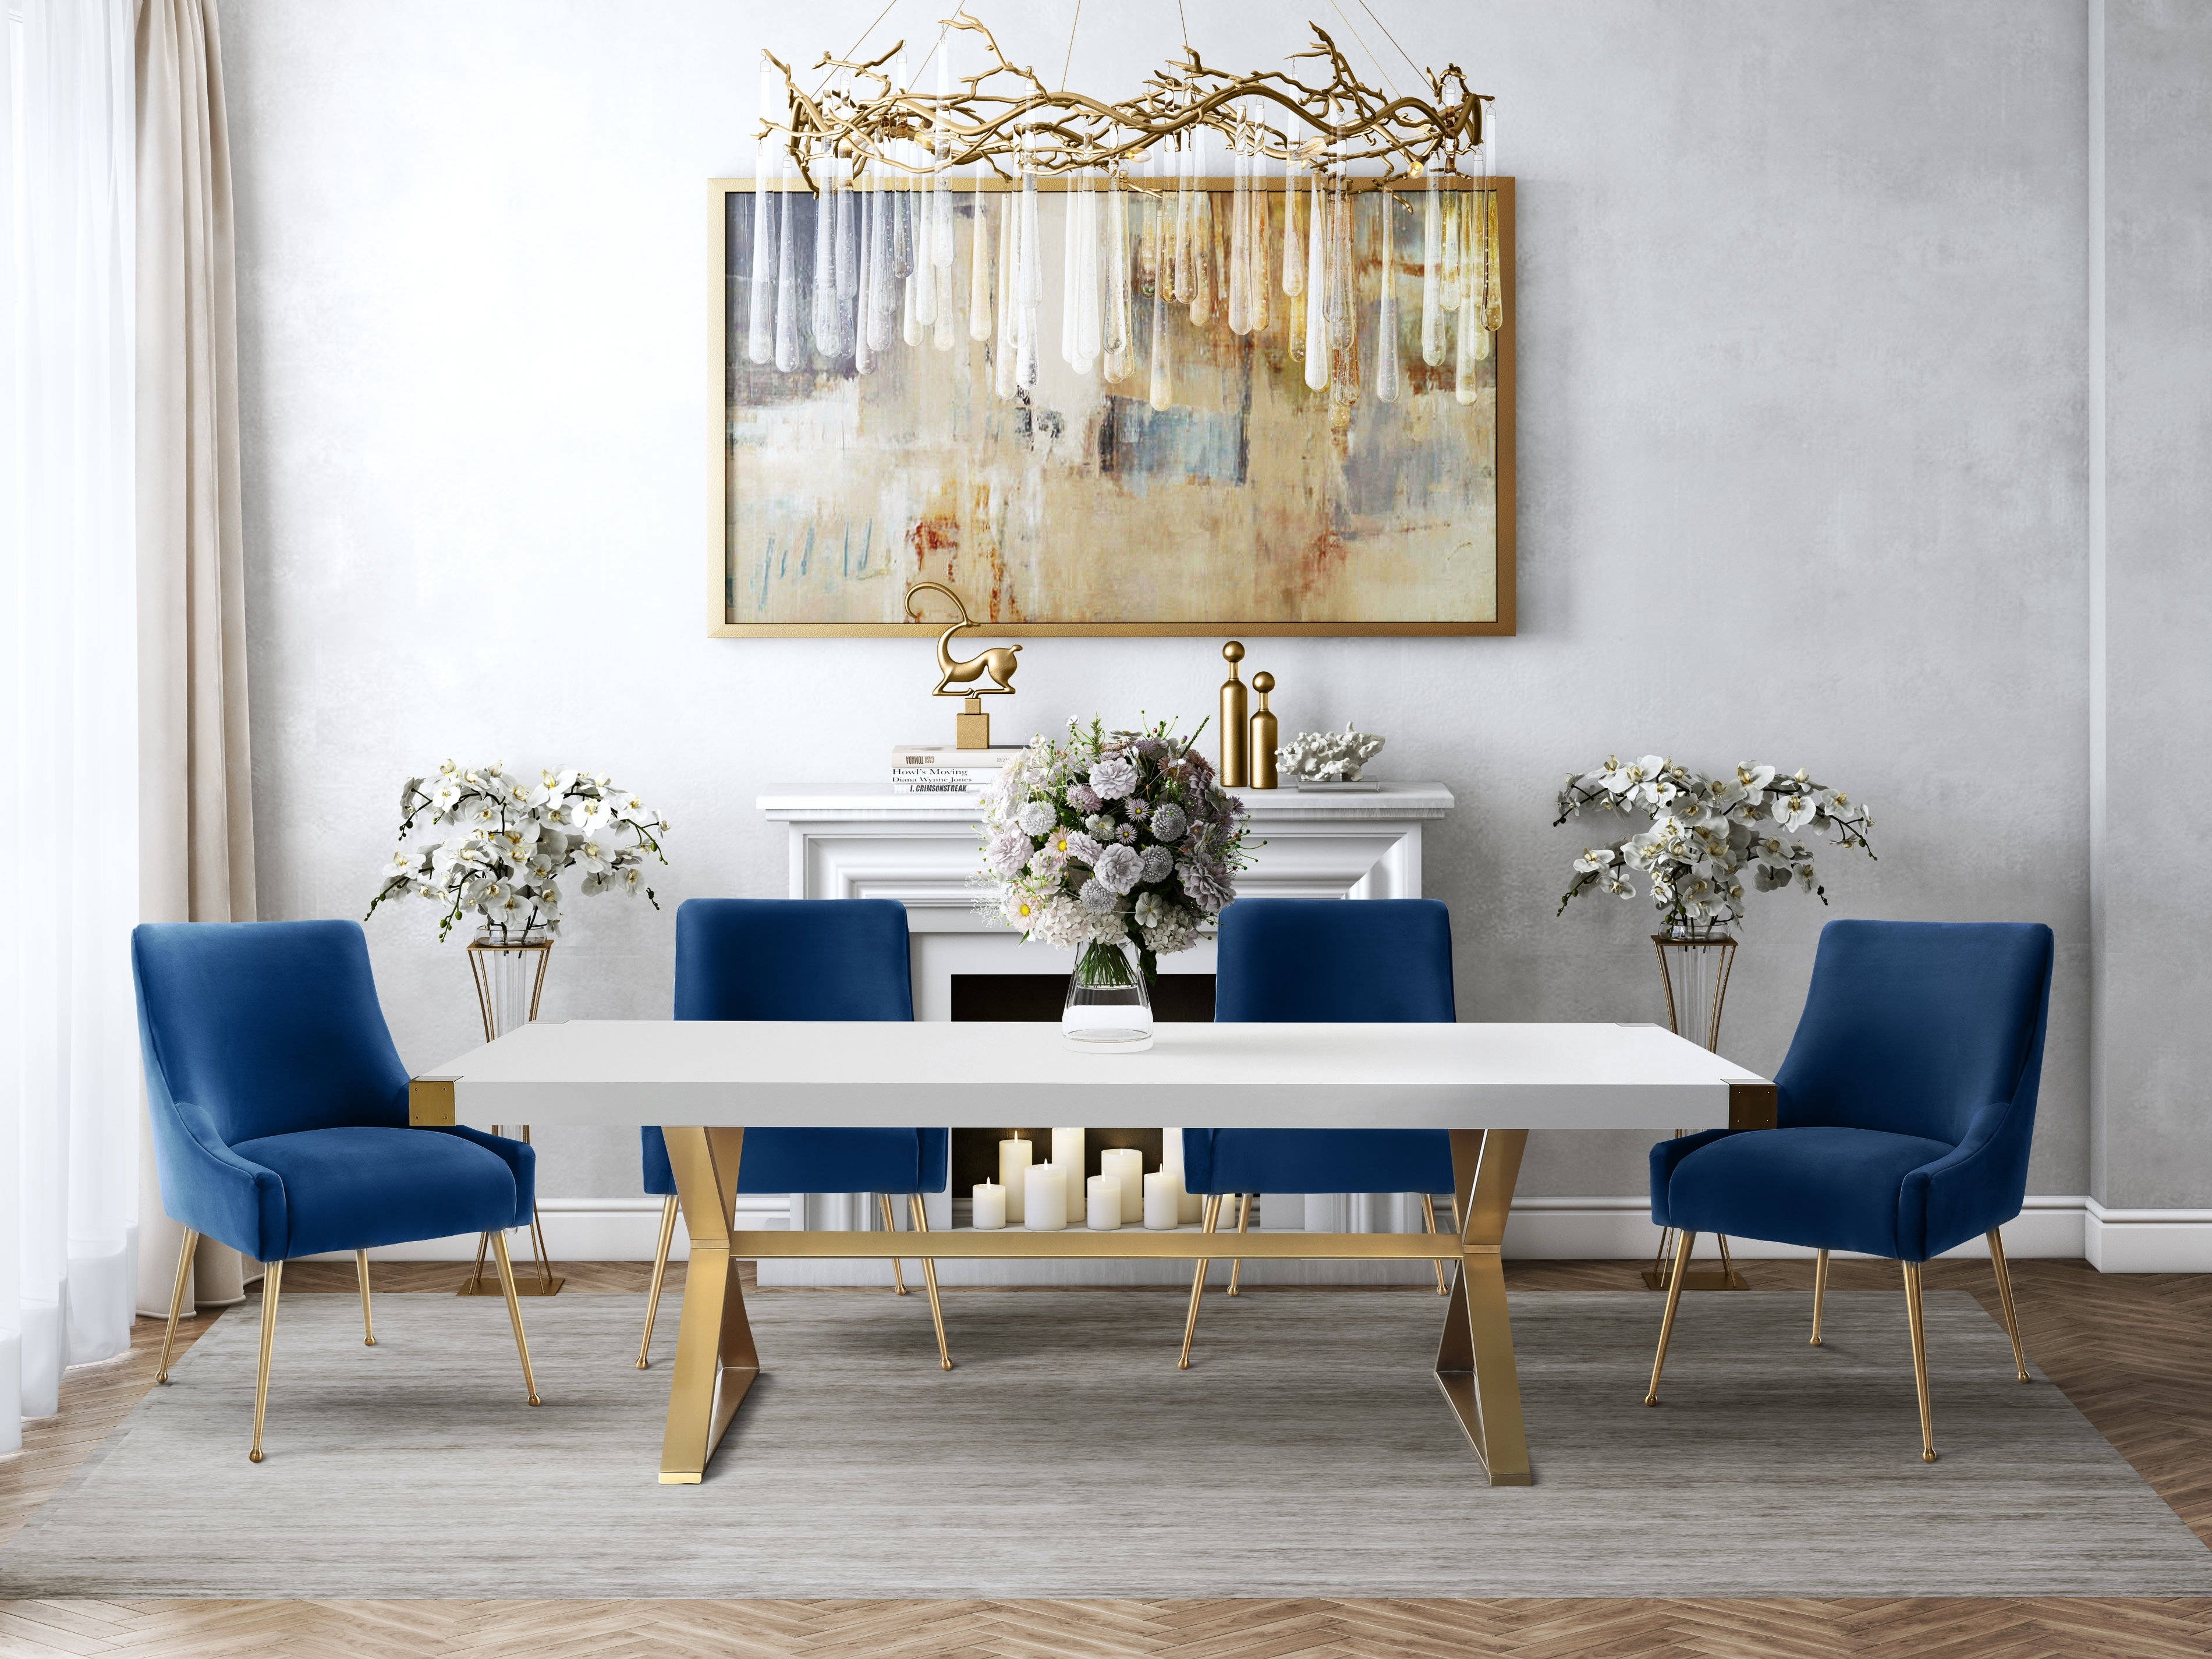 Tov Furniture Adeline 5Pc Dining Room Set With Navy Chairs | The Pertaining To Adeline 3 Piece Sectionals (View 16 of 25)